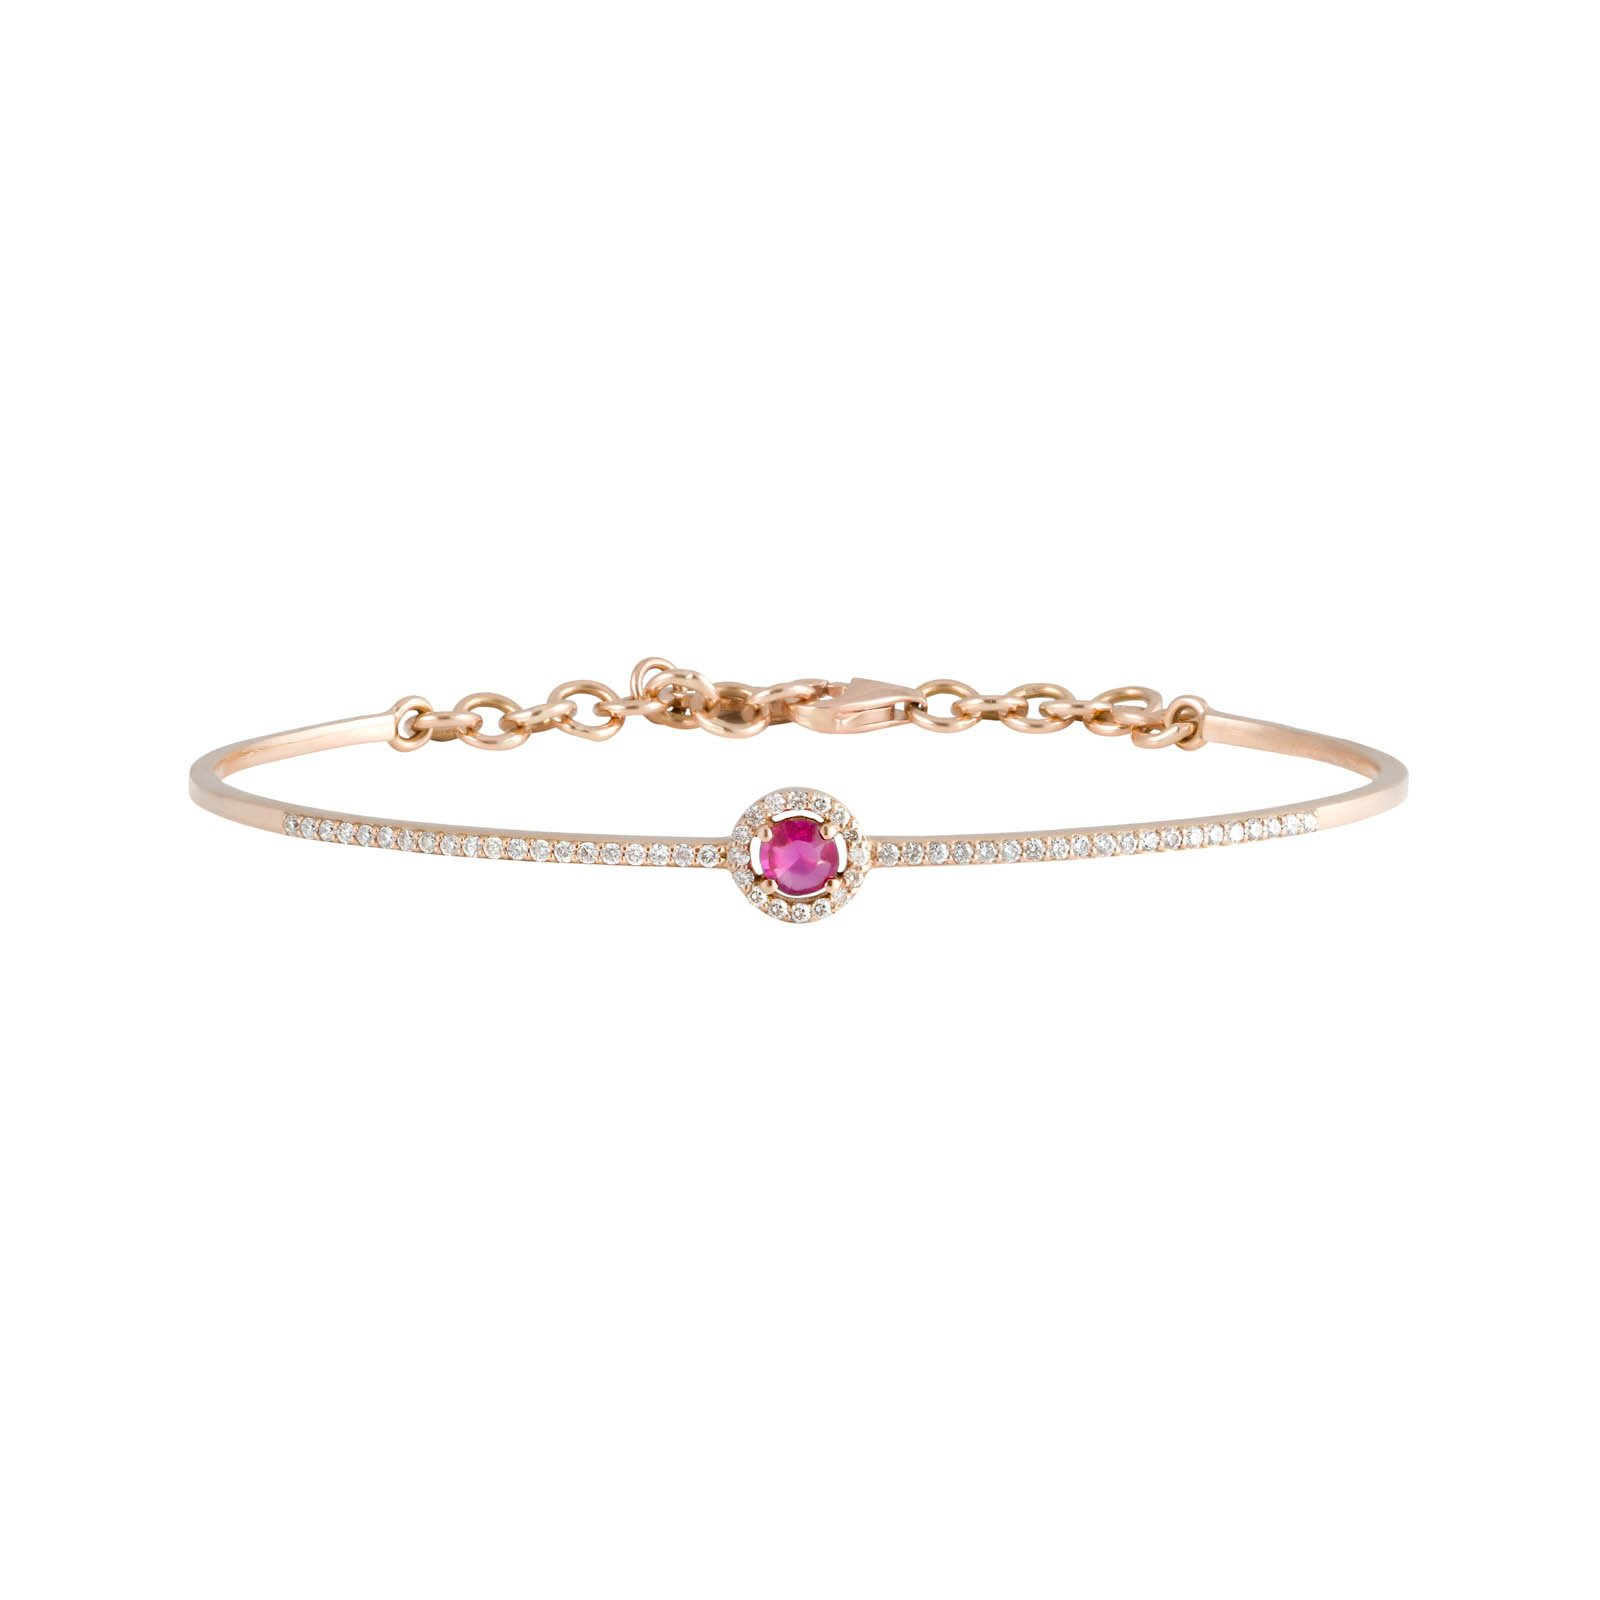 details ruby product diamonds gold item select ferrar gabrielle white diamond bracelet